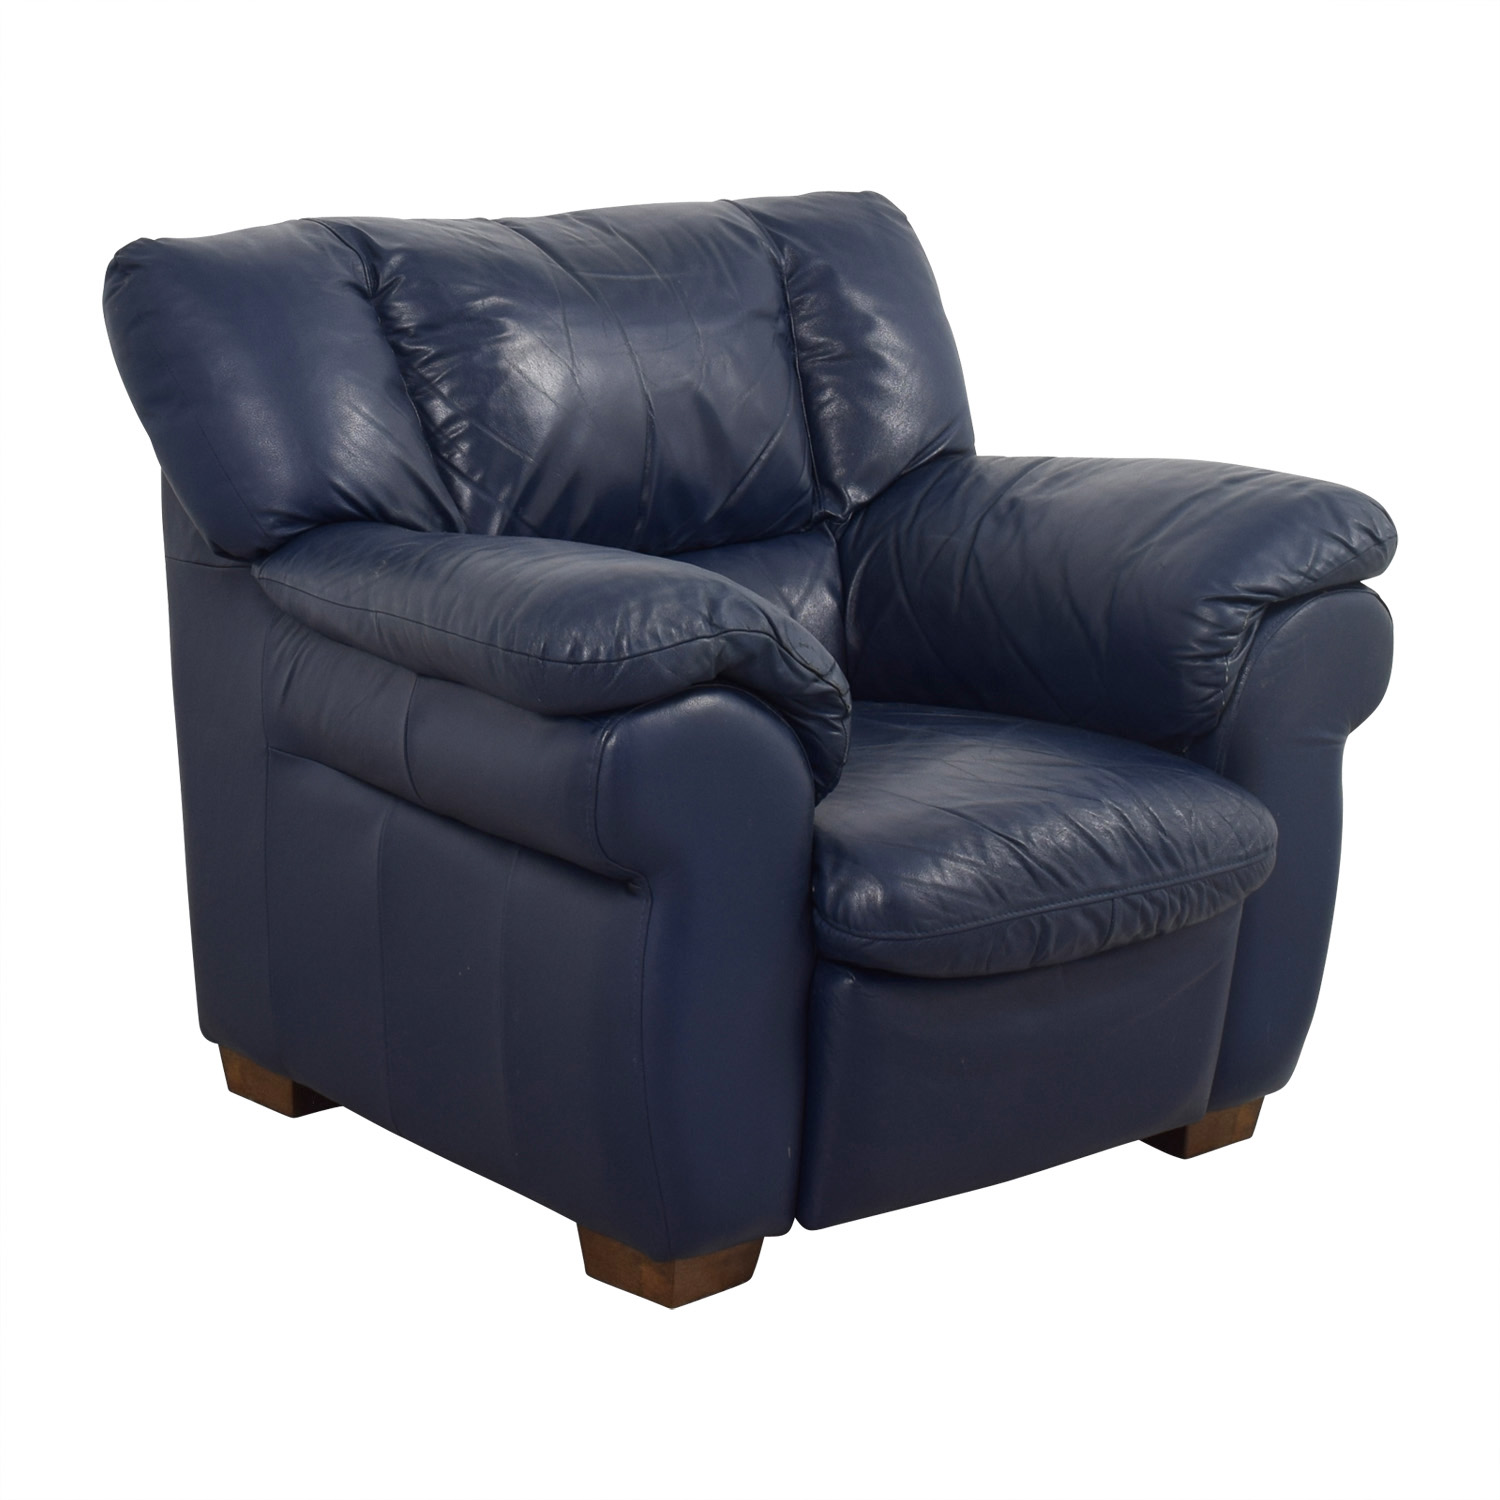 90 off macy 39 s macy 39 s navy blue leather sofa chair chairs for Blue leather sofa